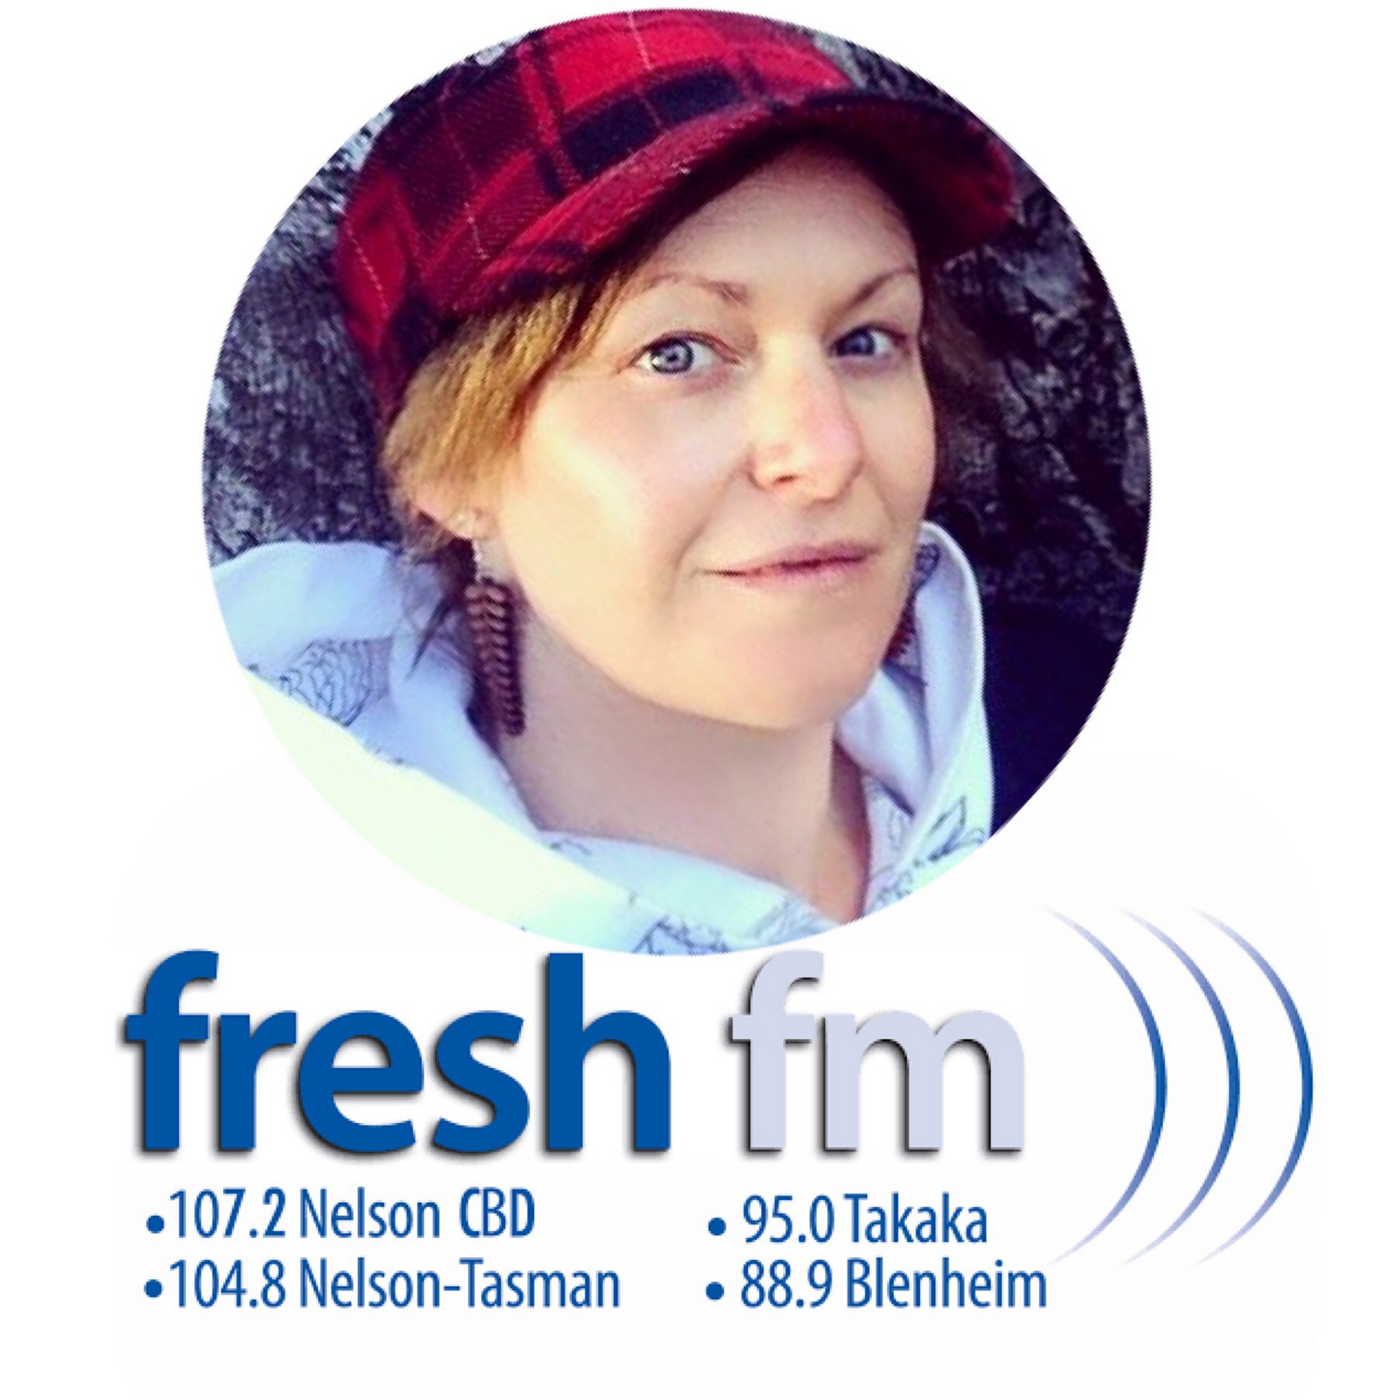 https://cdn.accessradio.org/StationFolder/freshfm/Images/Wendy---Fresh-Start3.png